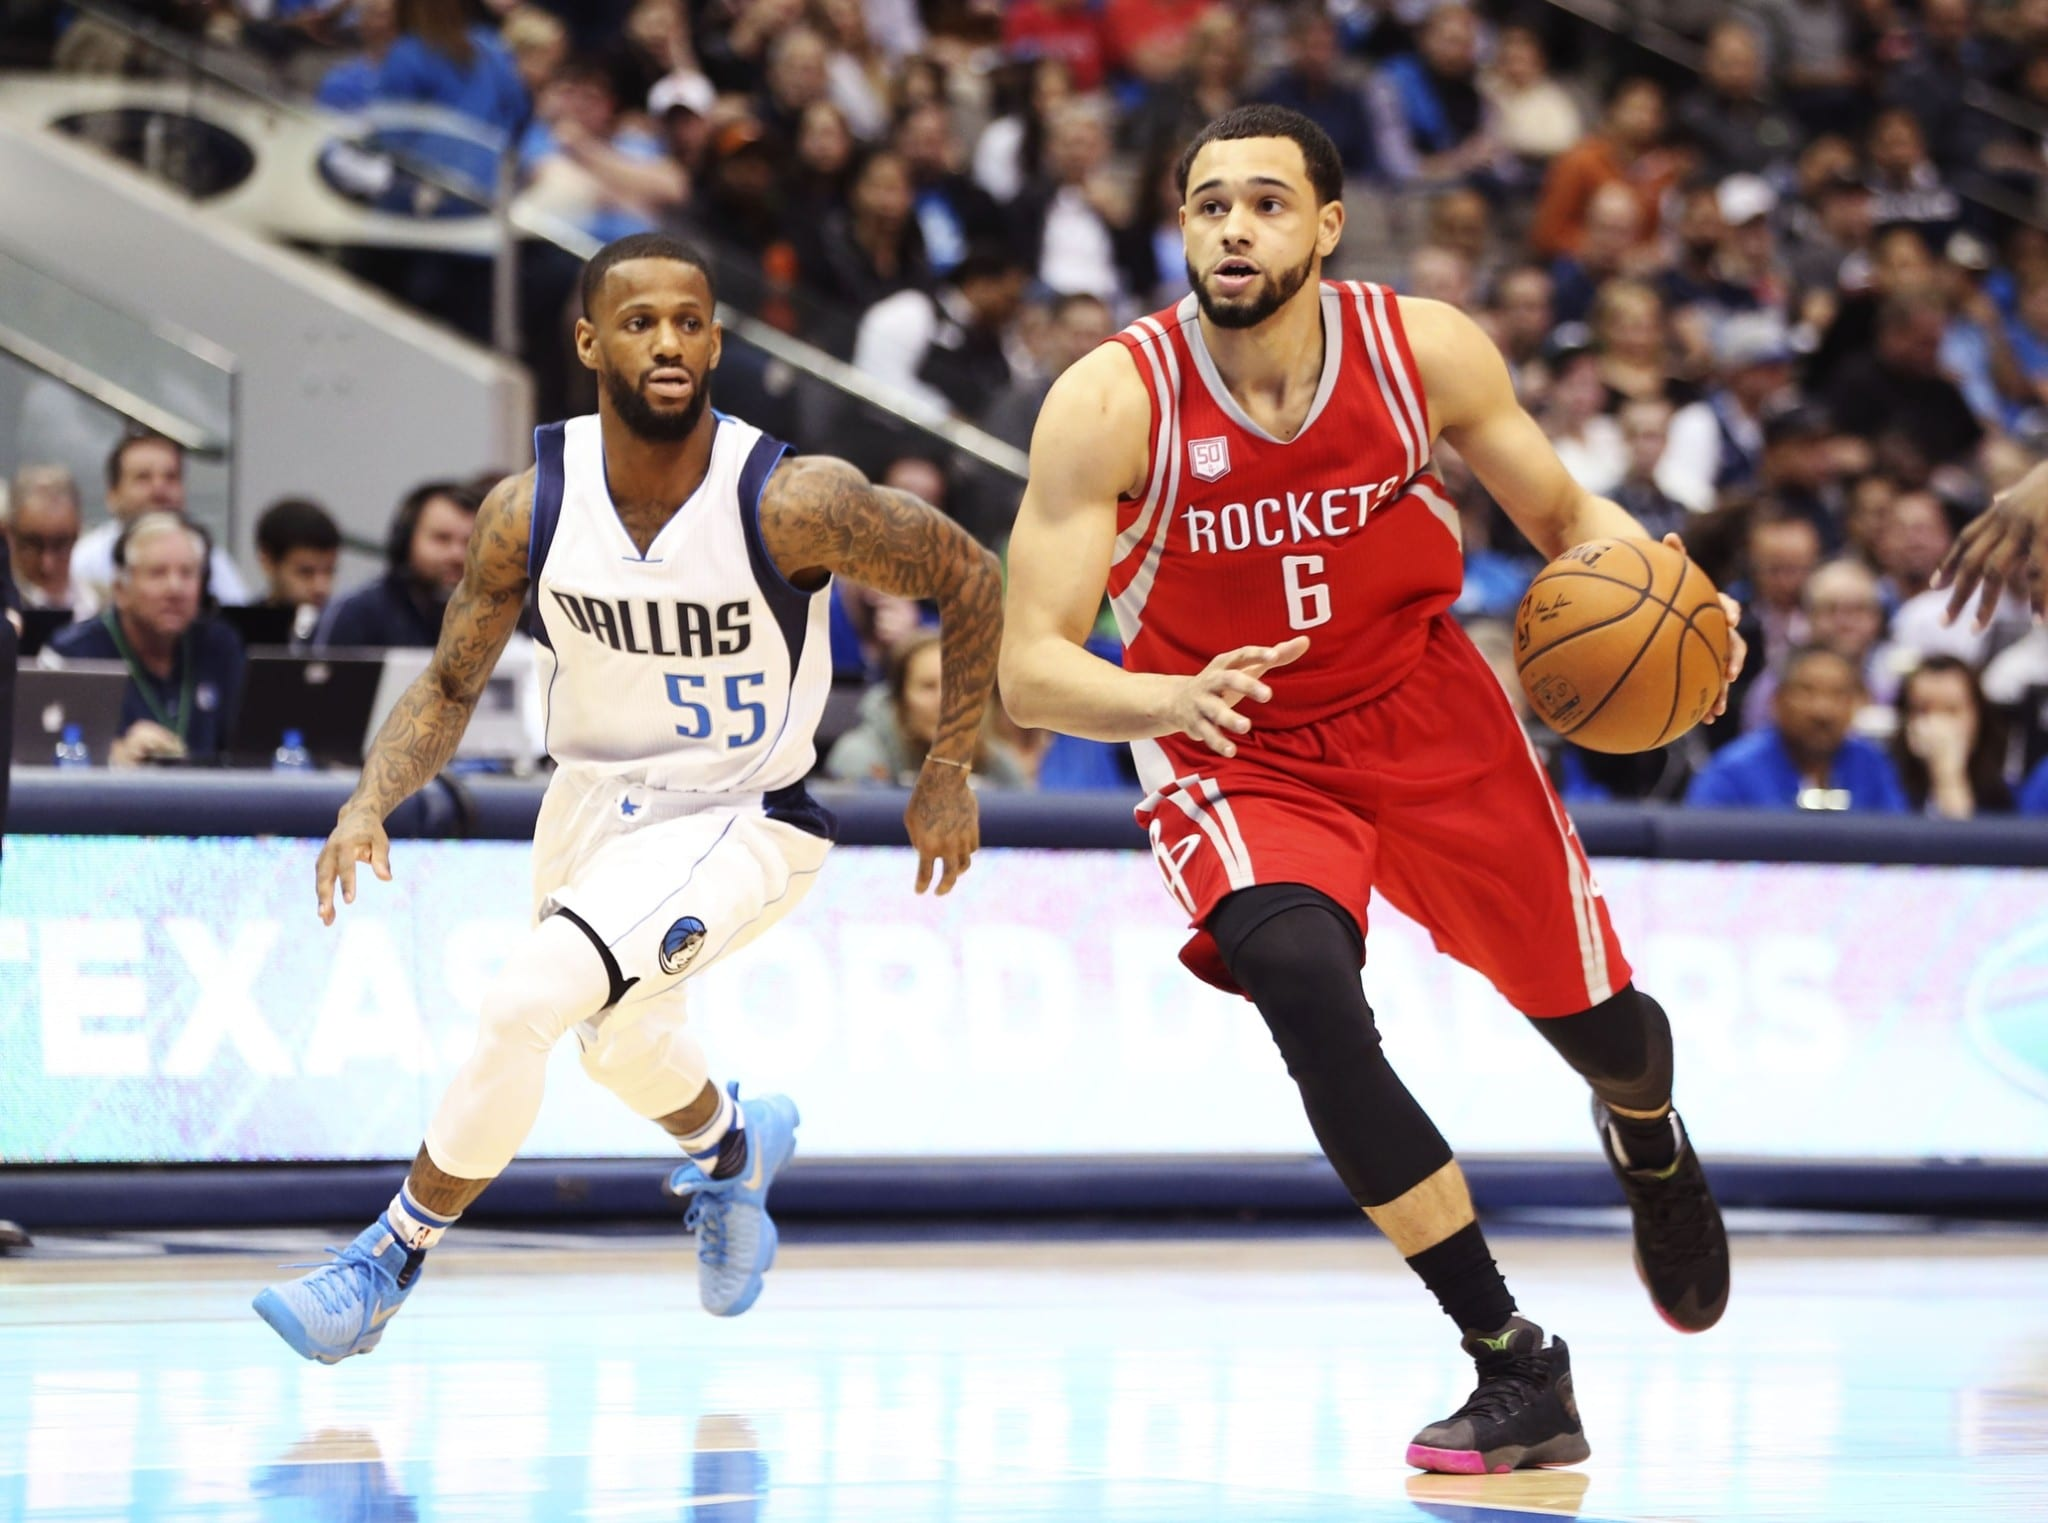 Lakers News: L.a. Acquires Houston Rockets Point Guard Tyler Ennis